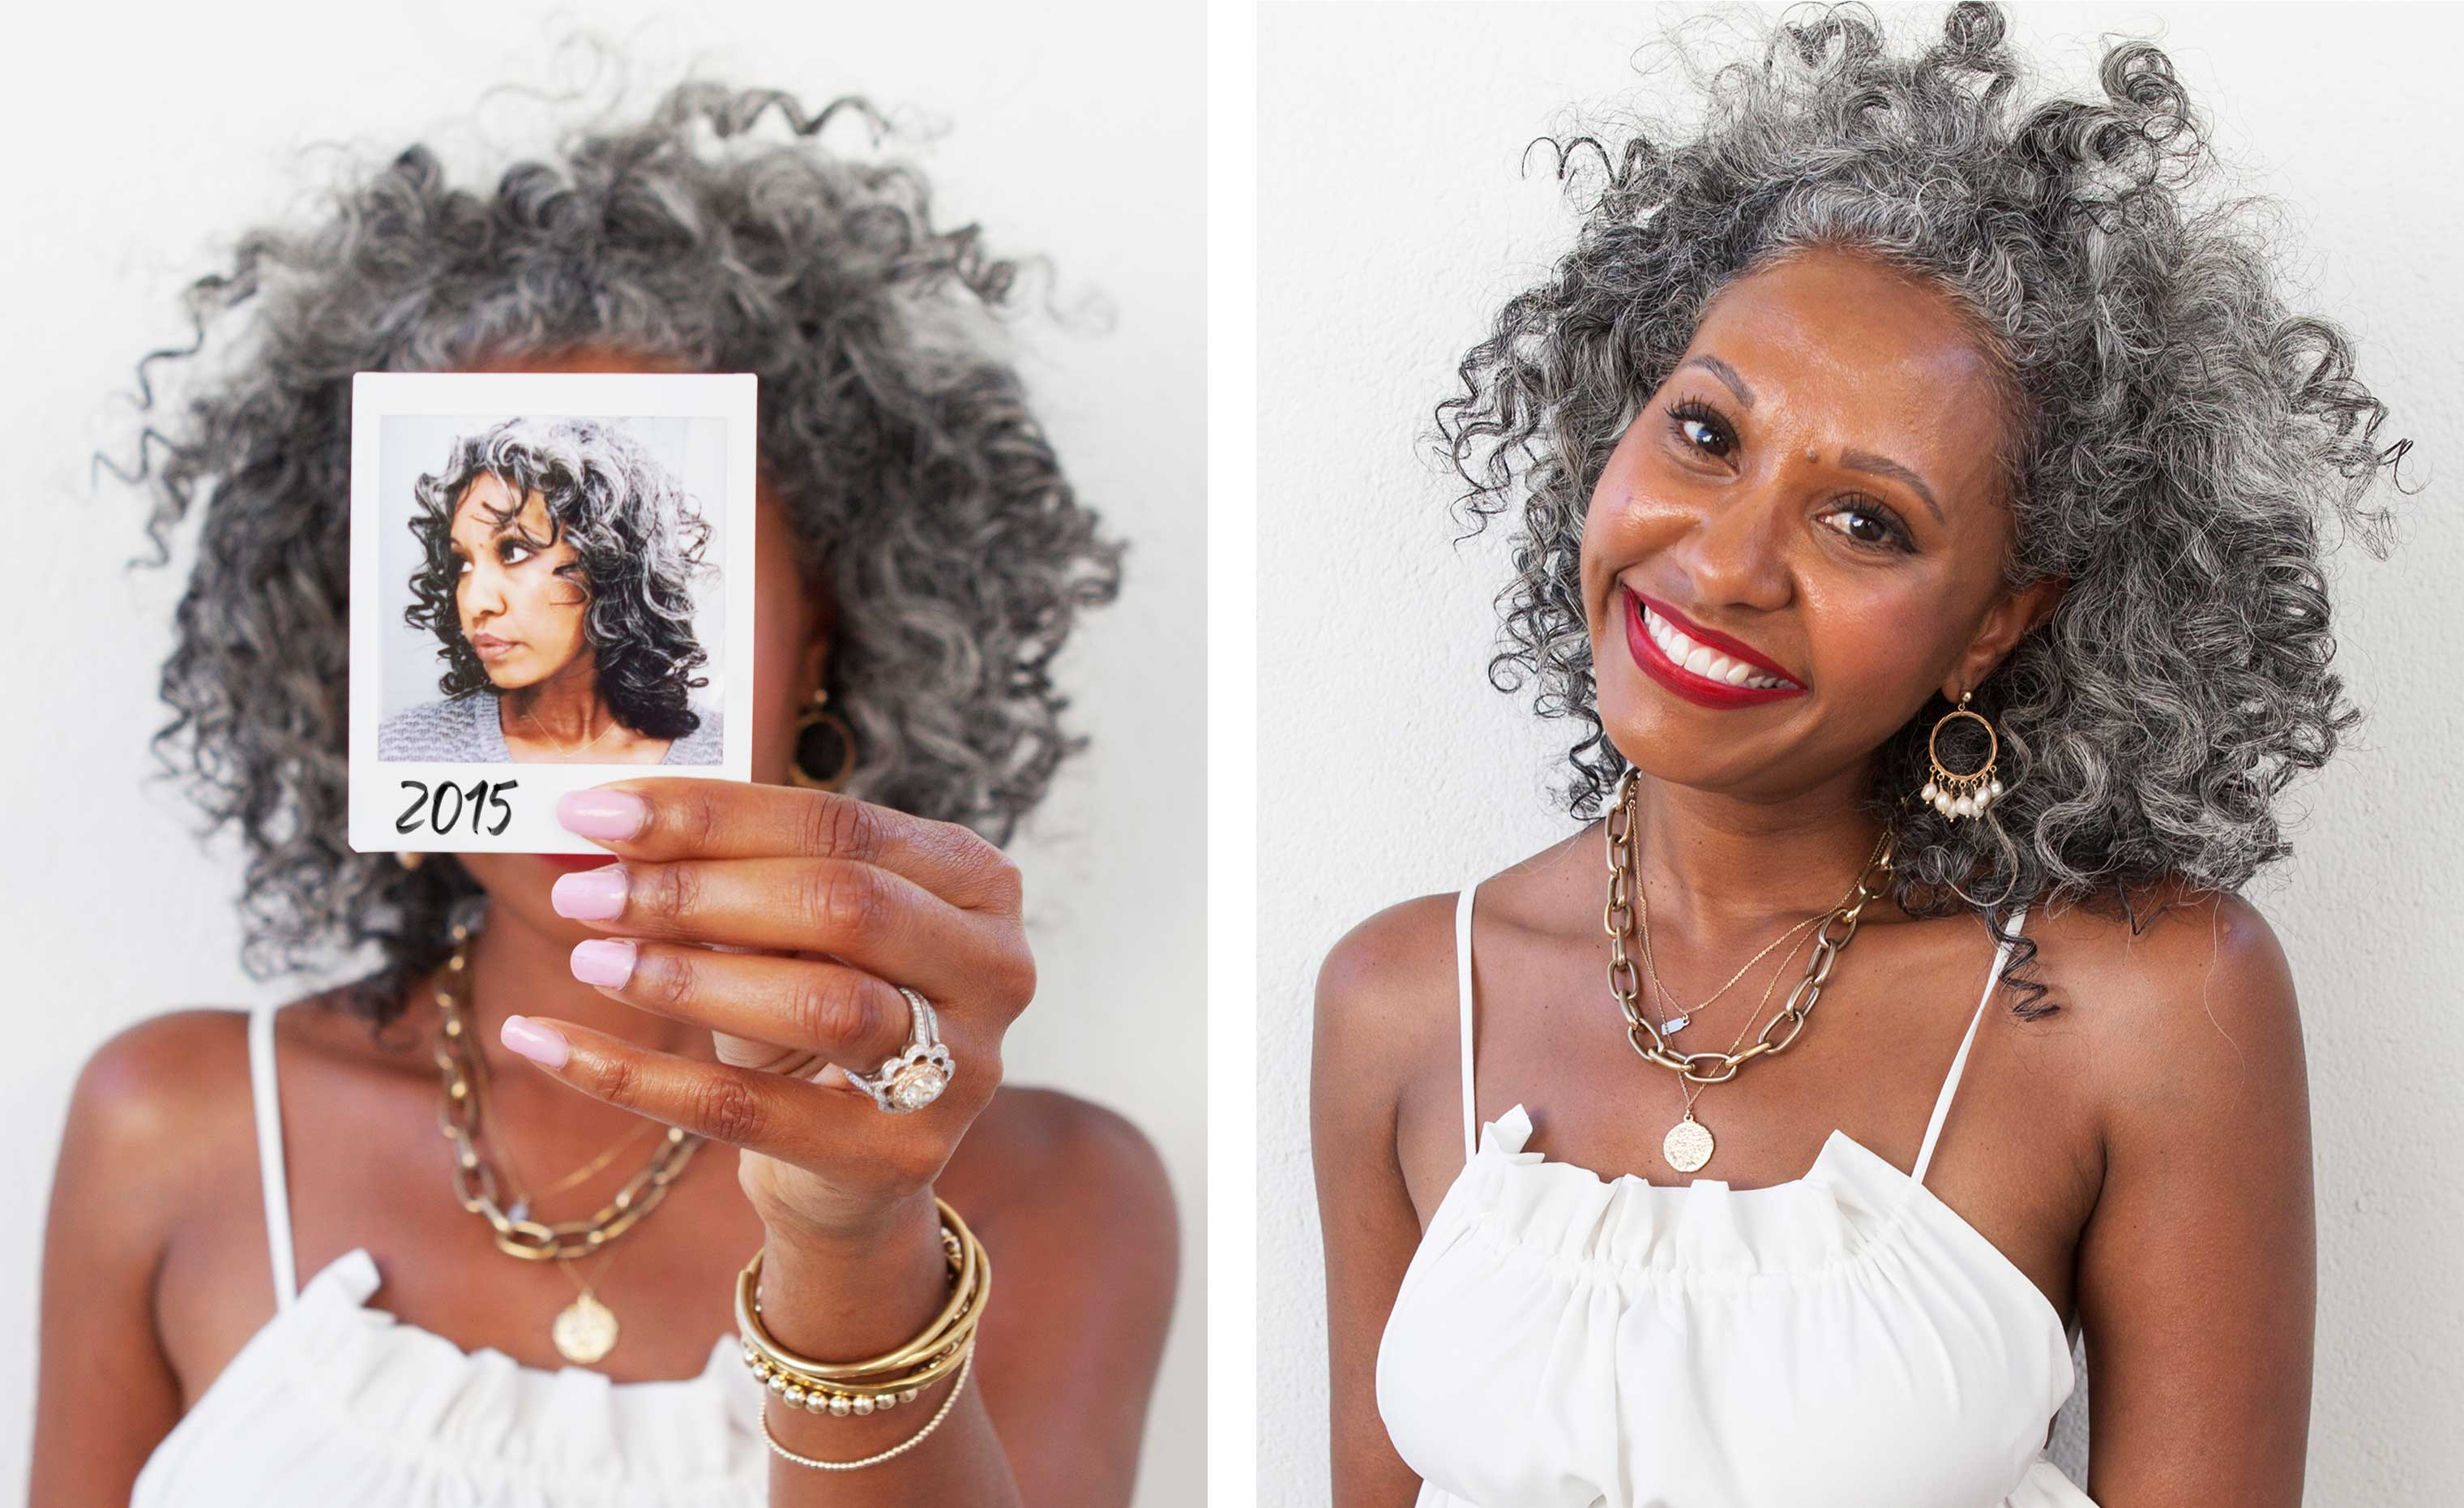 woman with grey curly hair holding up her before transformation photo next to her after